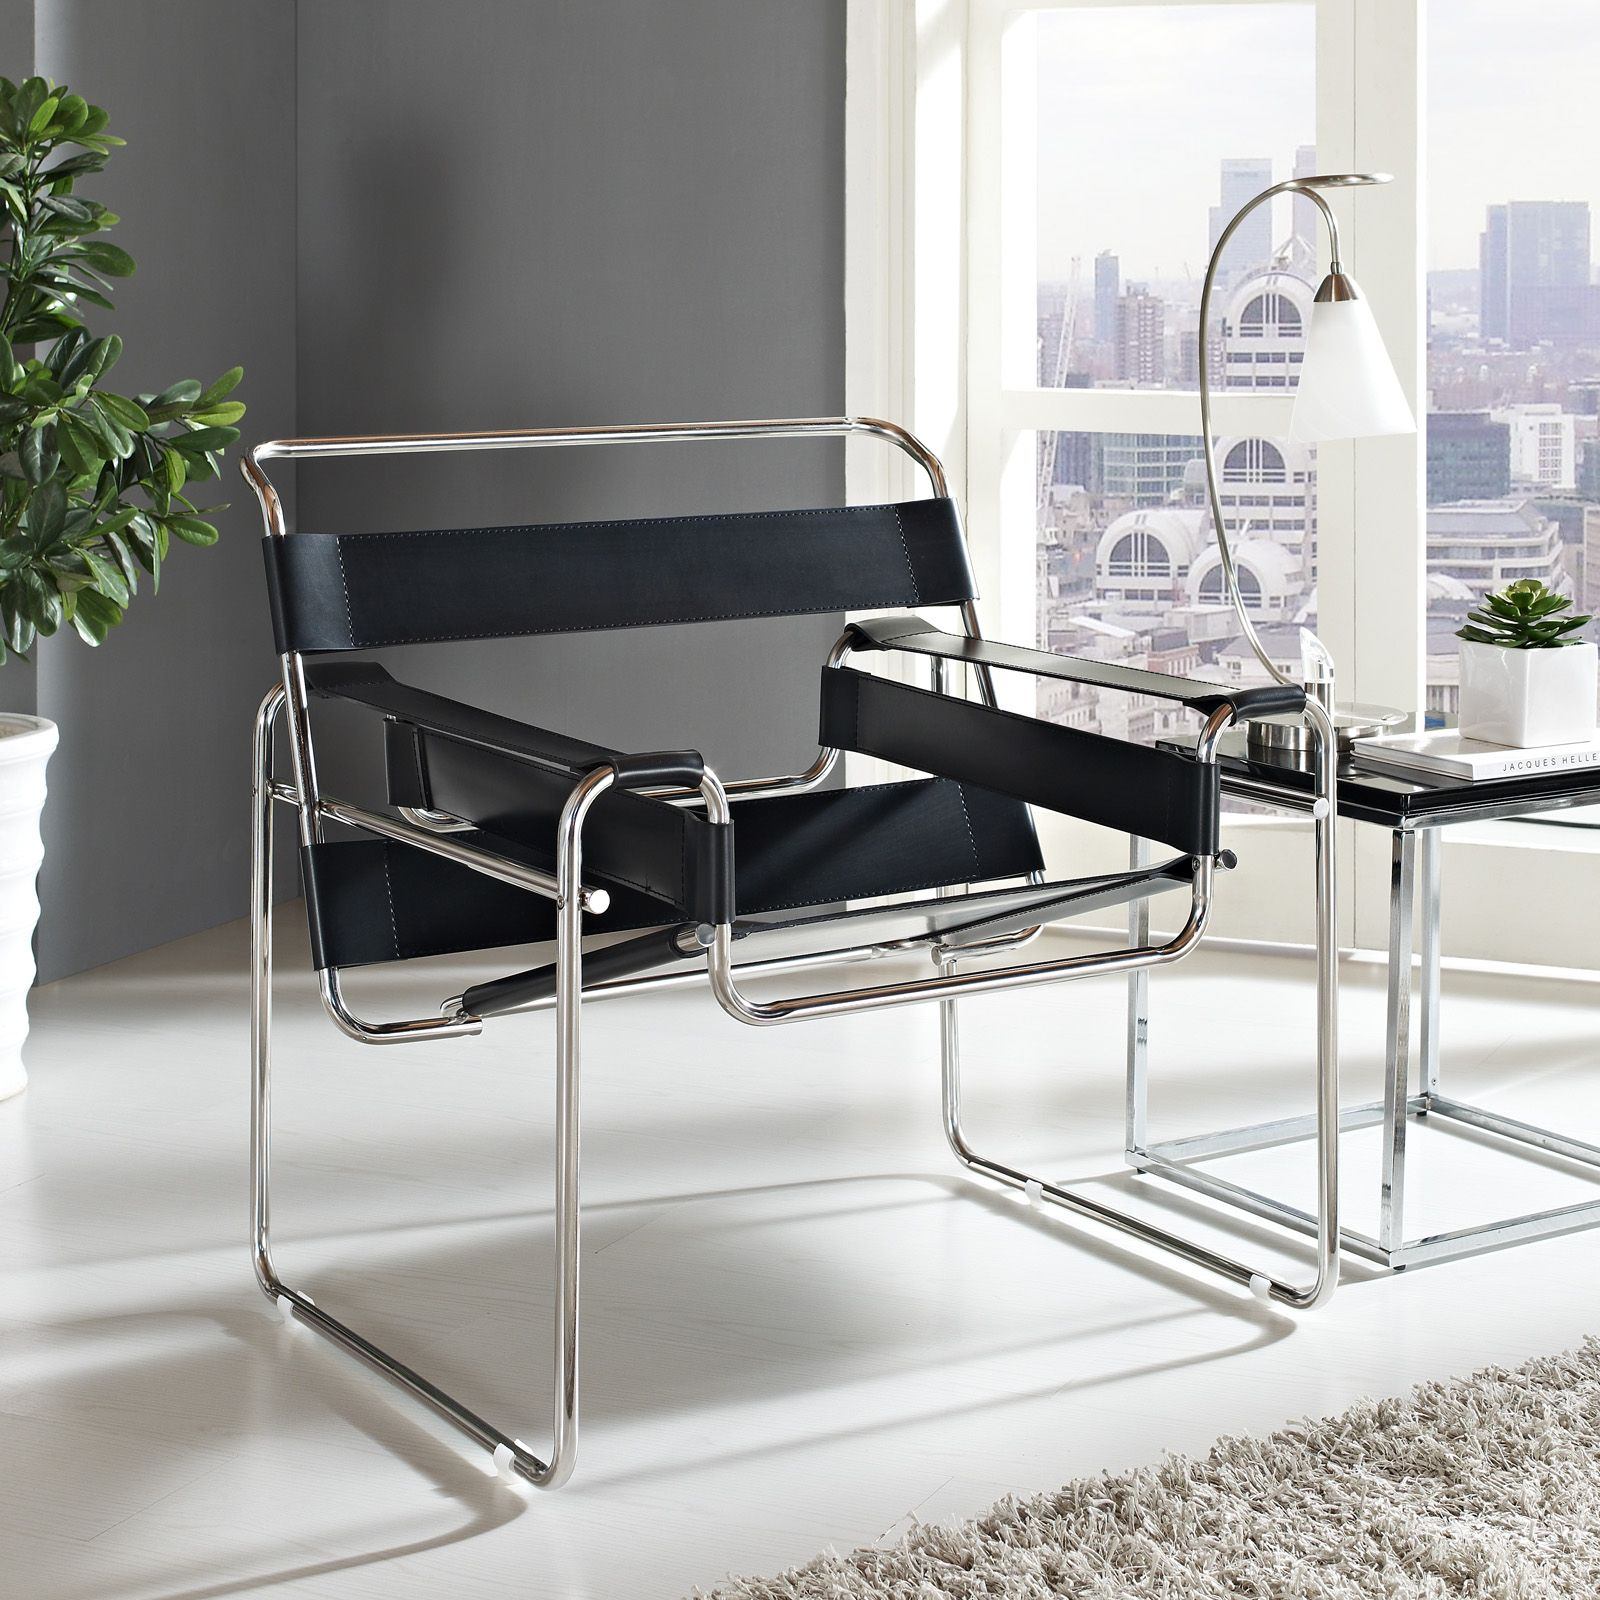 Slingy Lounge Chair Wassily chair, Chair, Furniture